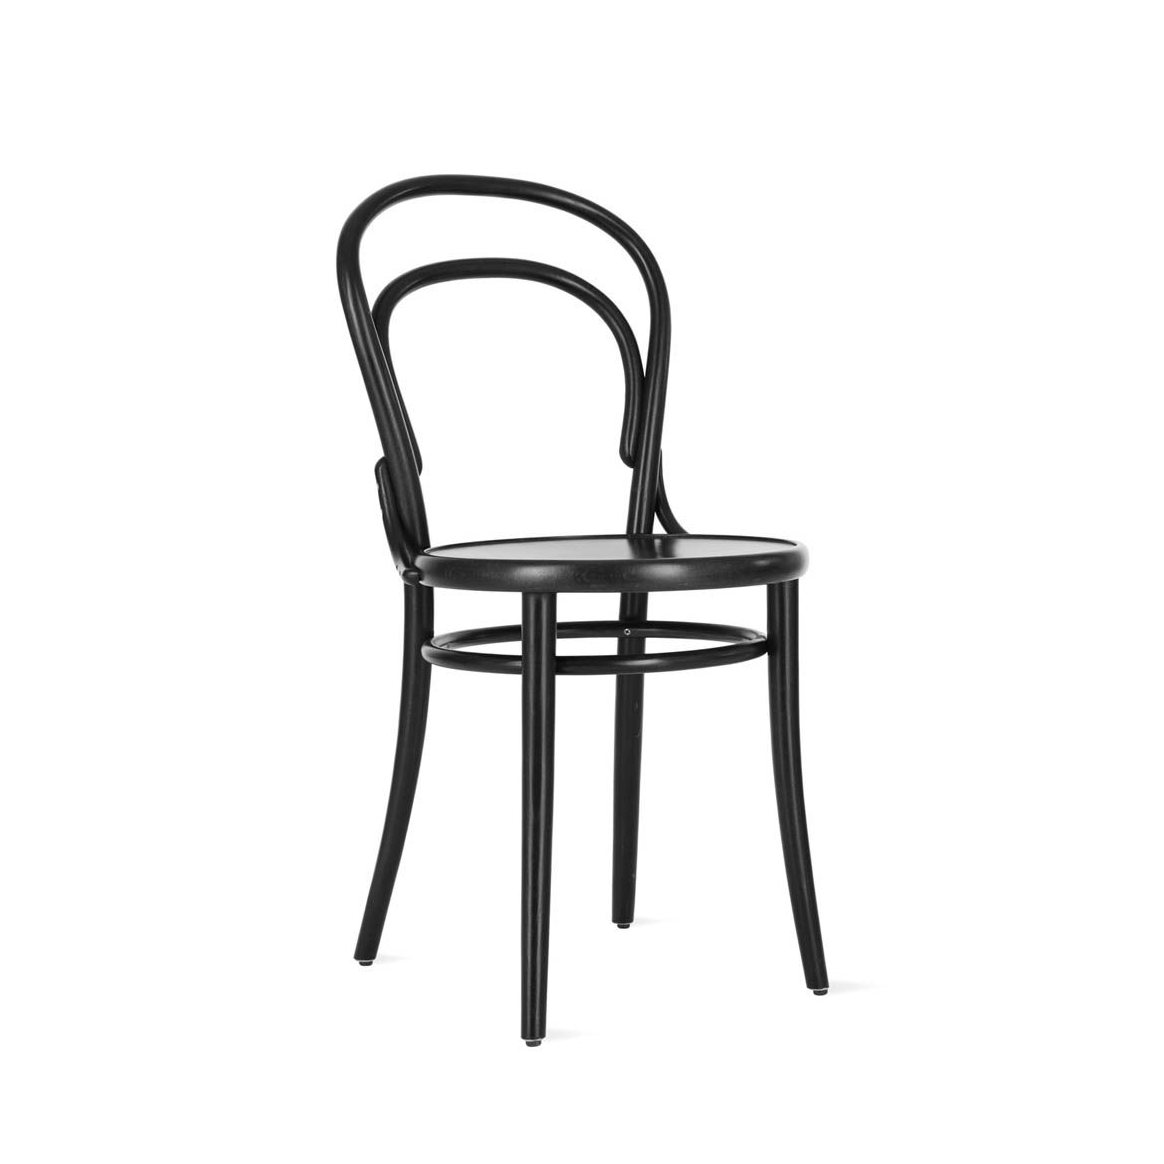 Era (214) chair, black.